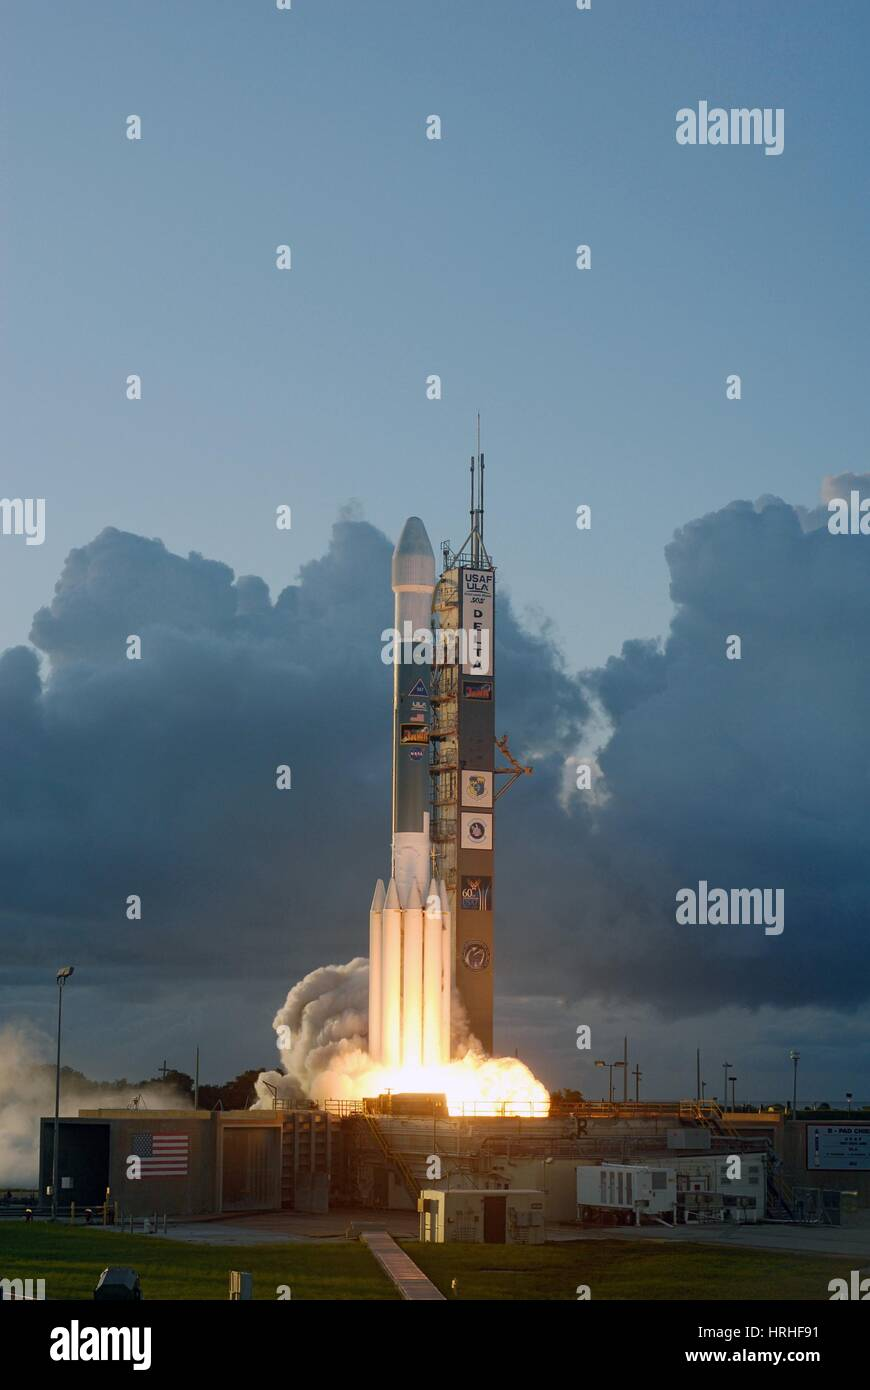 Dawn Spacecraft Launch, 2007 - Stock Image